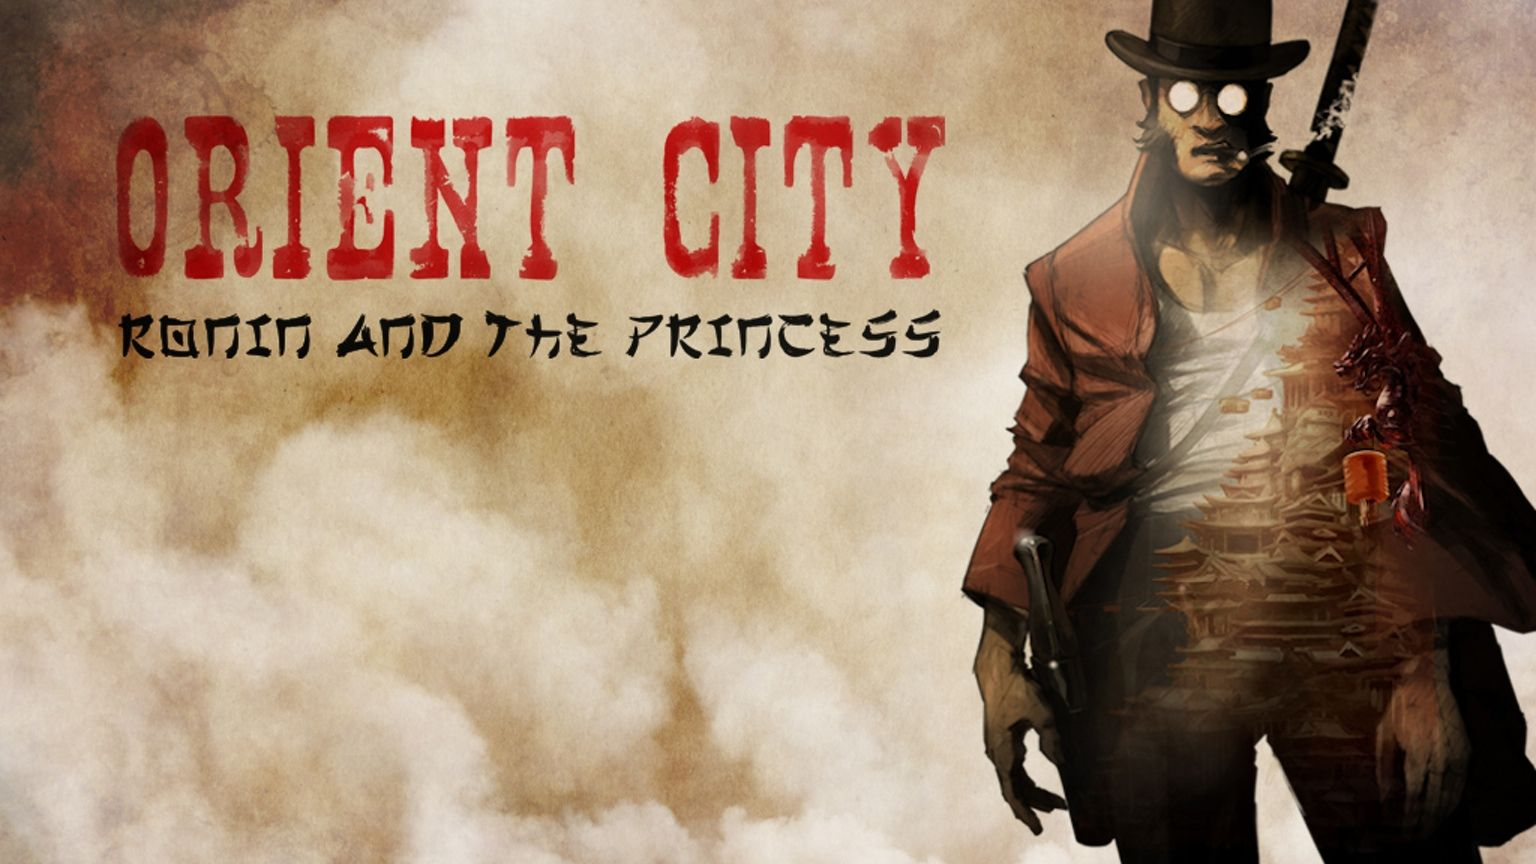 A hand-drawn samurai spaghetti western set in Orient City, an unforgiving vertical tangle of rocks and skyscrapers.